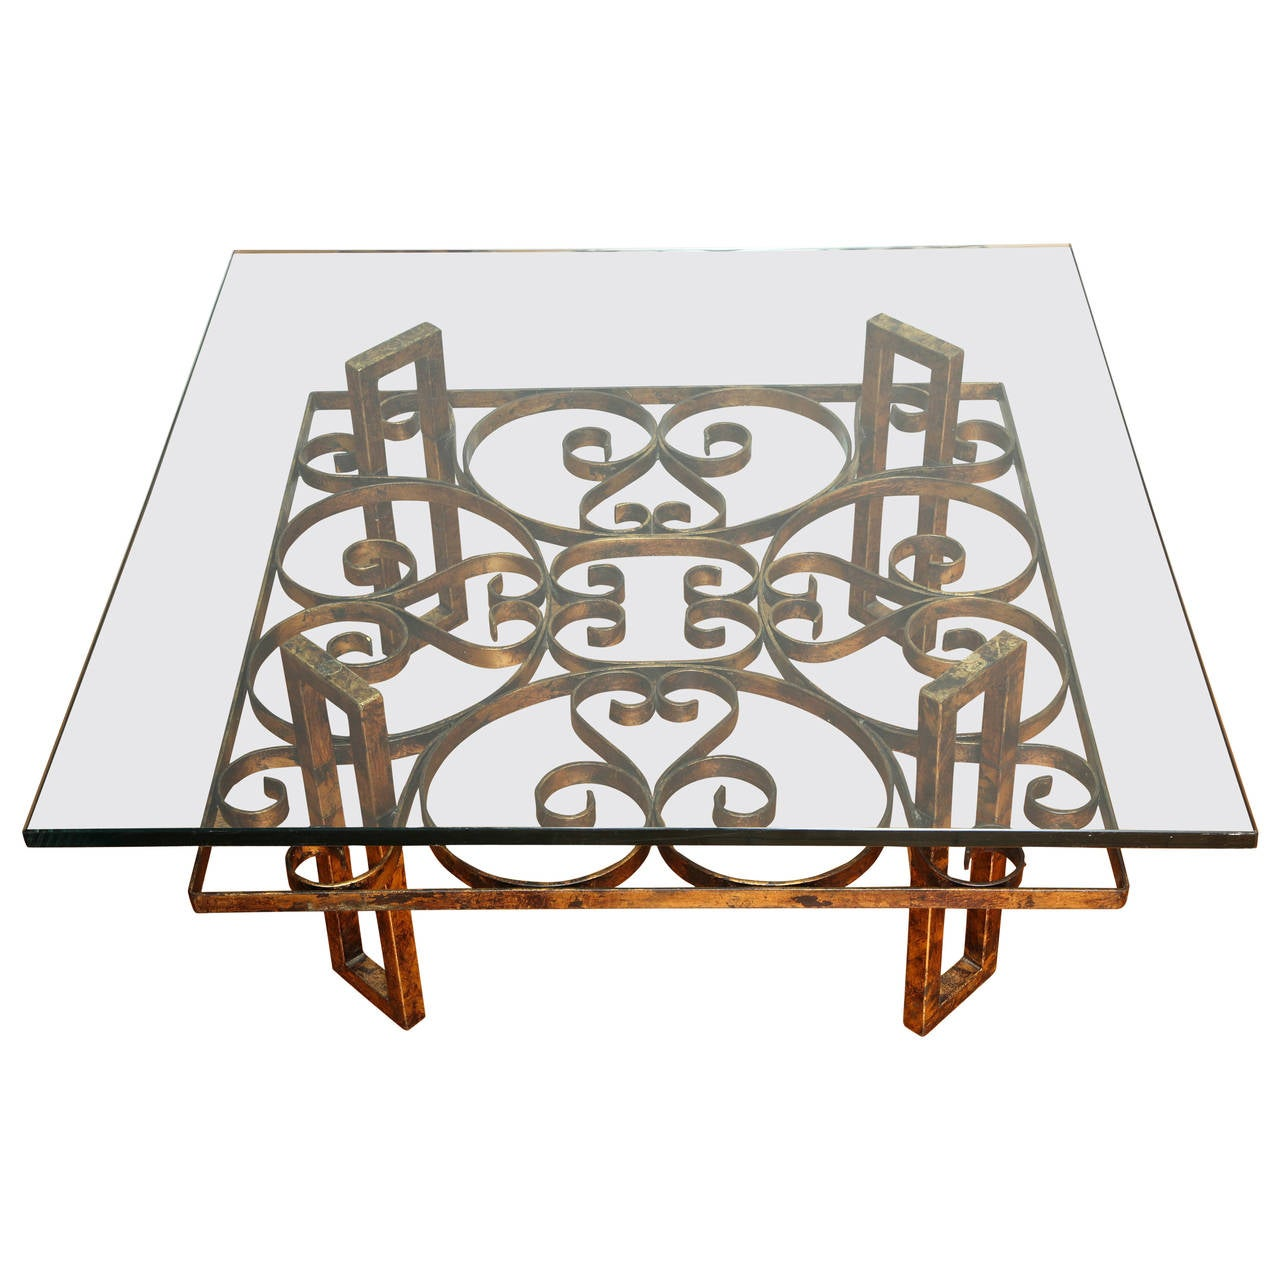 Gilded Wrought Iron Square Coffee Table With Scroll Motif Glass Top For Sale At 1stdibs